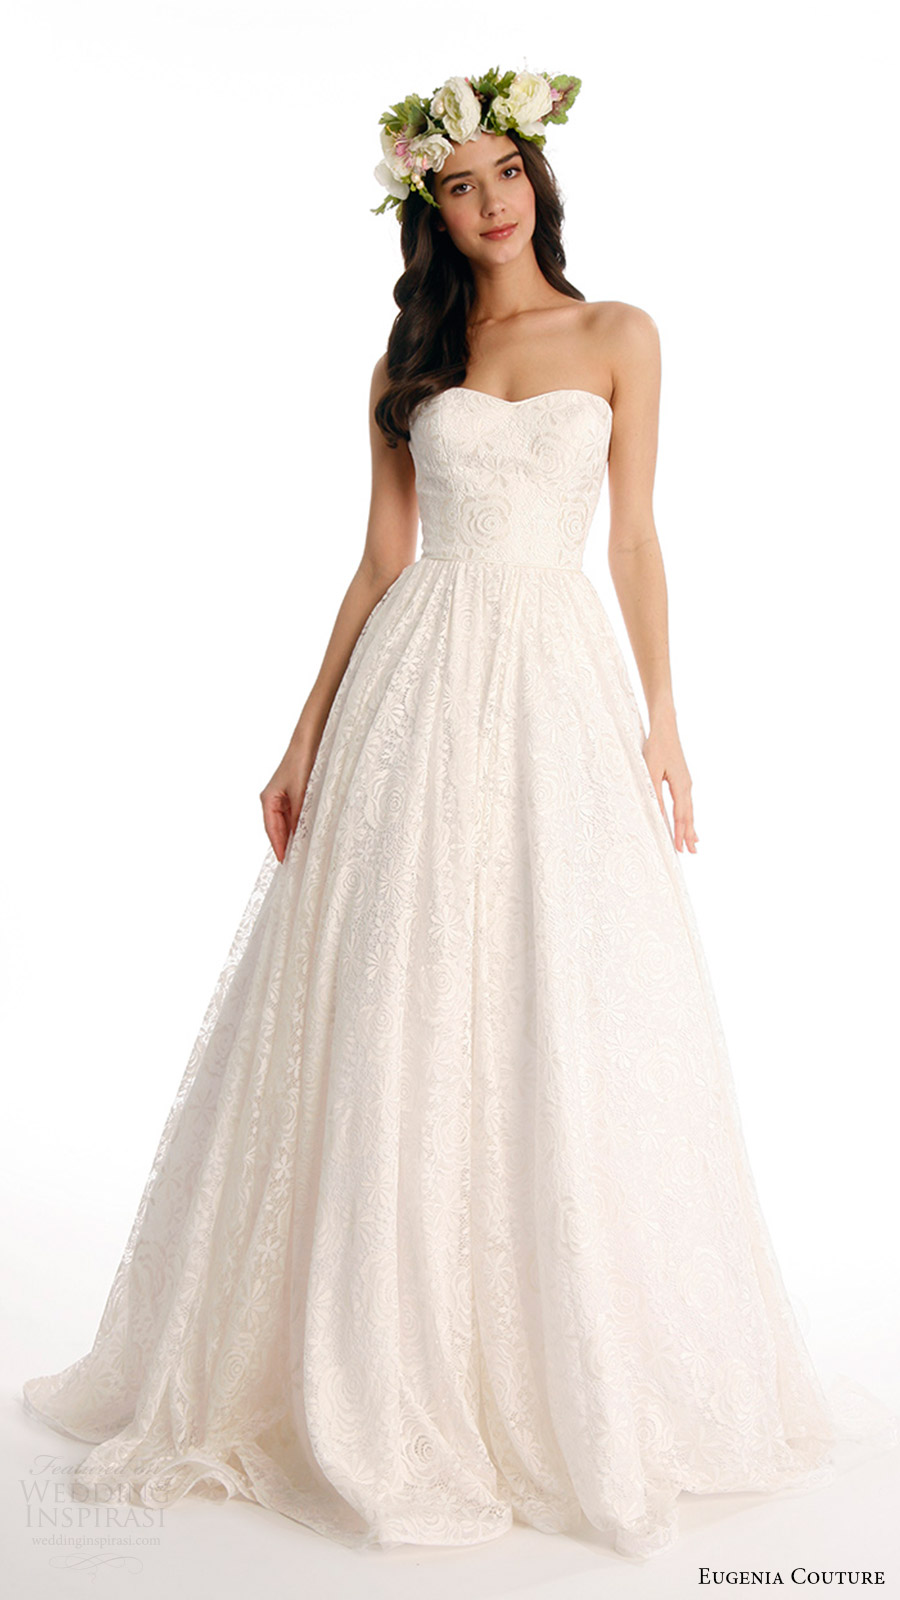 eugenia couture joy bridal spring 2017 strapless sweetheart ball gown wedding dress (beverly) mv